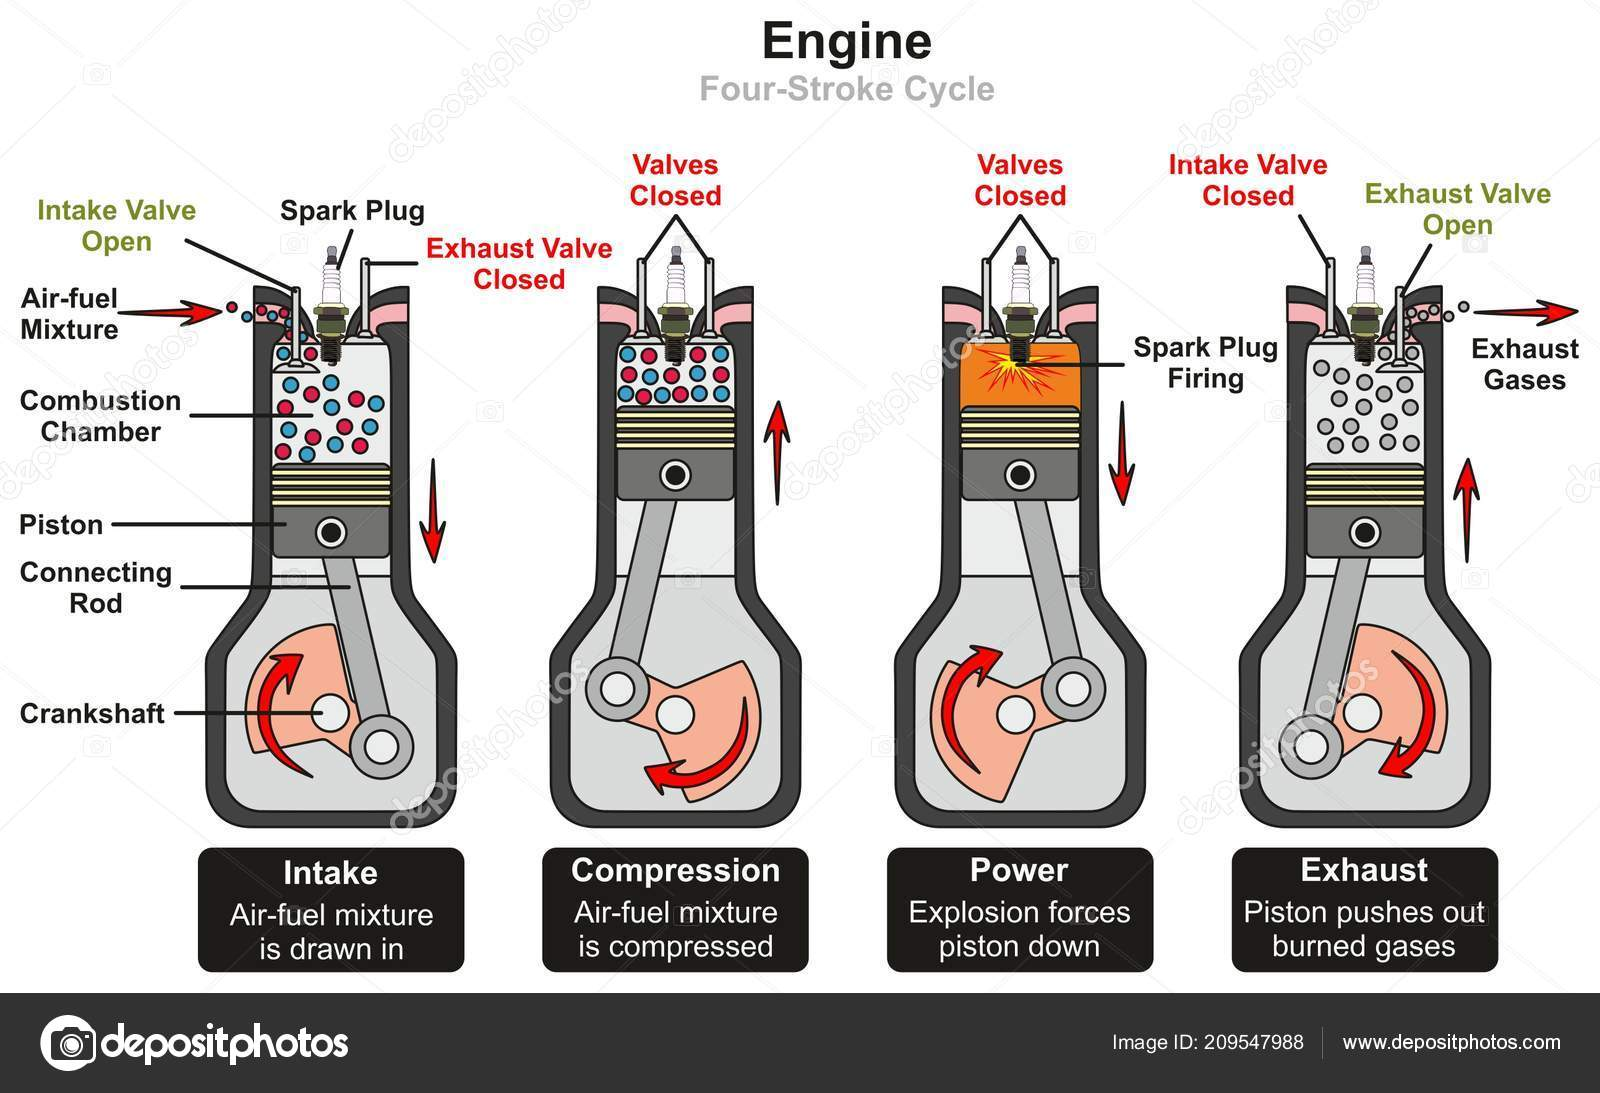 Engine Four Stroke Cycle Infographic Diagram Including